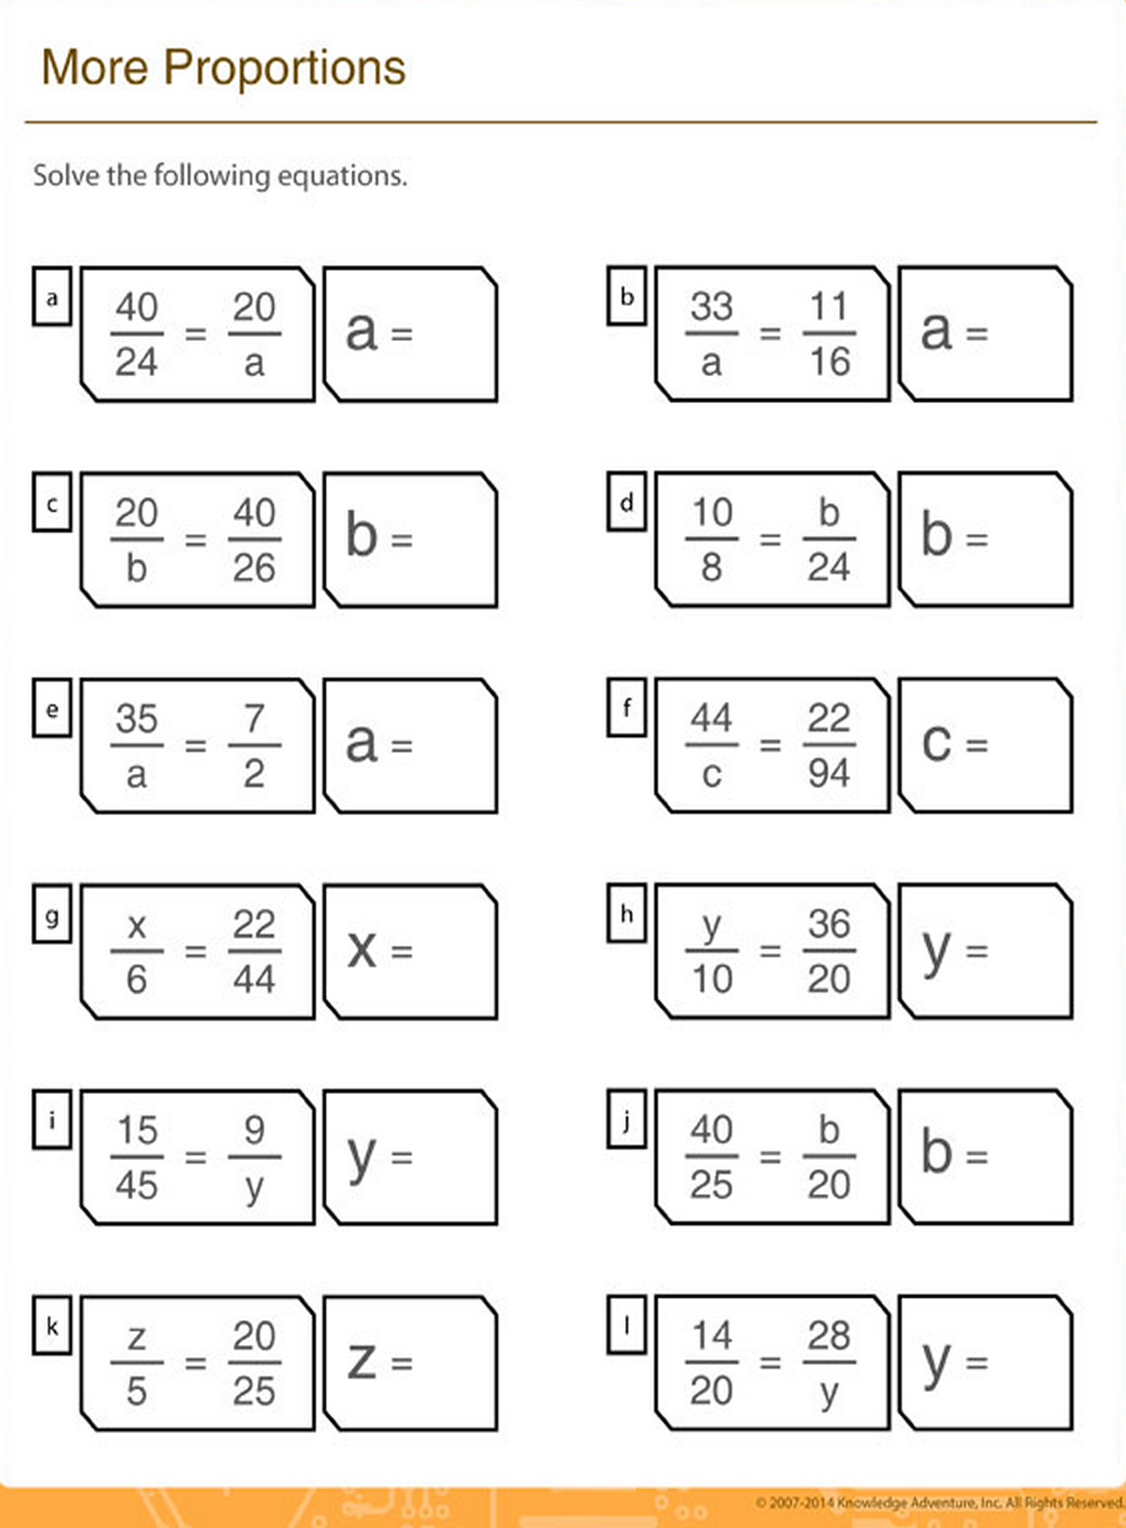 Pin By Zapzapmath On Printable Math Sheets Proportions Worksheet Solving Proportions Transition Words Worksheet